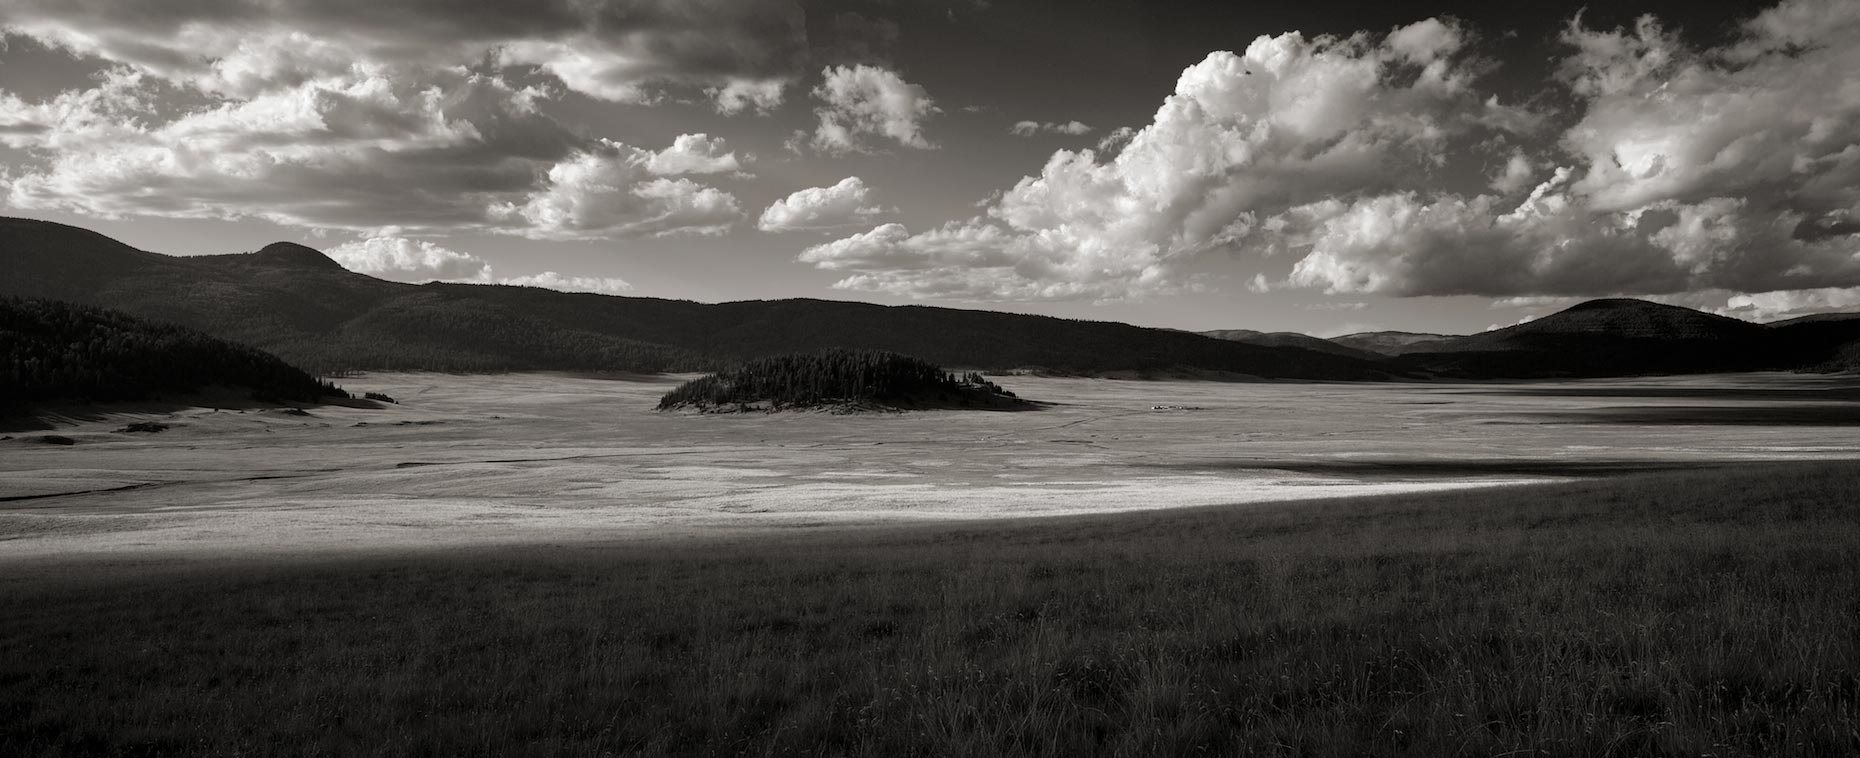 Valles Caldera National Preserve, NM